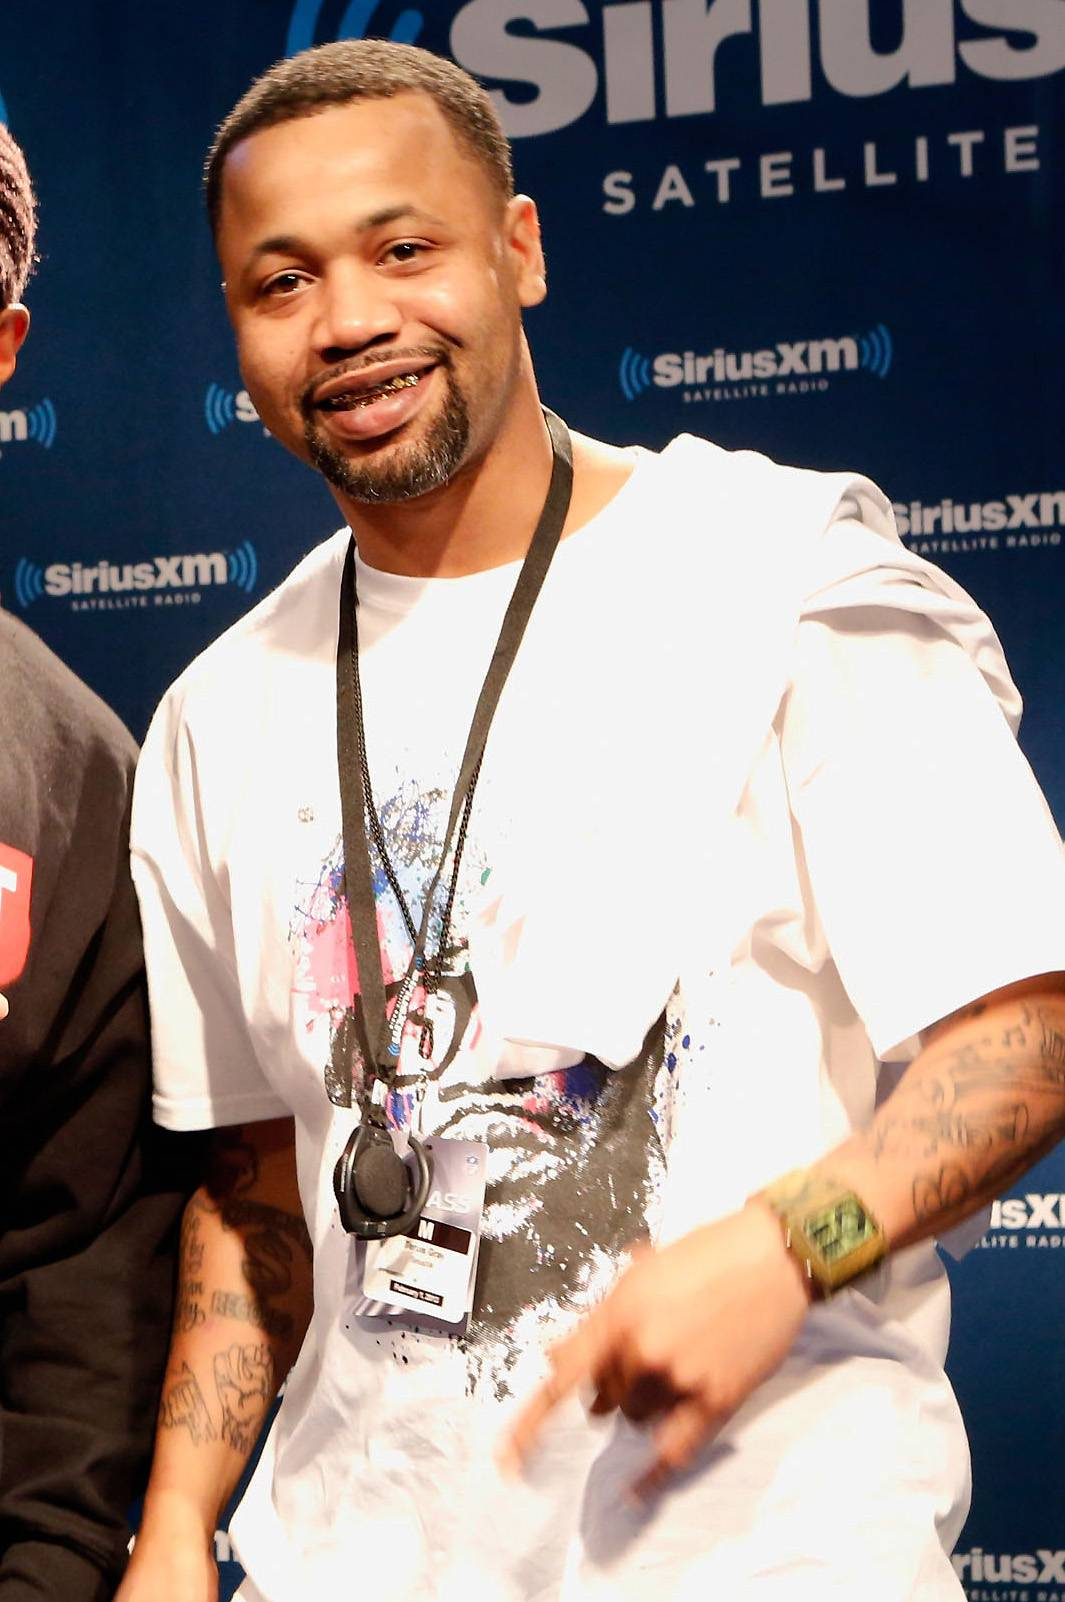 """Juvenile - Juvenile and Wayne came up together as members of the Hot Boys, but that didn't stop a war of words from breaking out between the two in the early 2000s. Juvie lashed out at his former band mate and Cash Money on """"A H--"""" in 2001, spitting, """"How you pull the nerve to ever start dissin' n---as?When you was on BET straight kissin' n---as?"""" (Photo: Cindy Ord/Getty Images for Sirius)"""